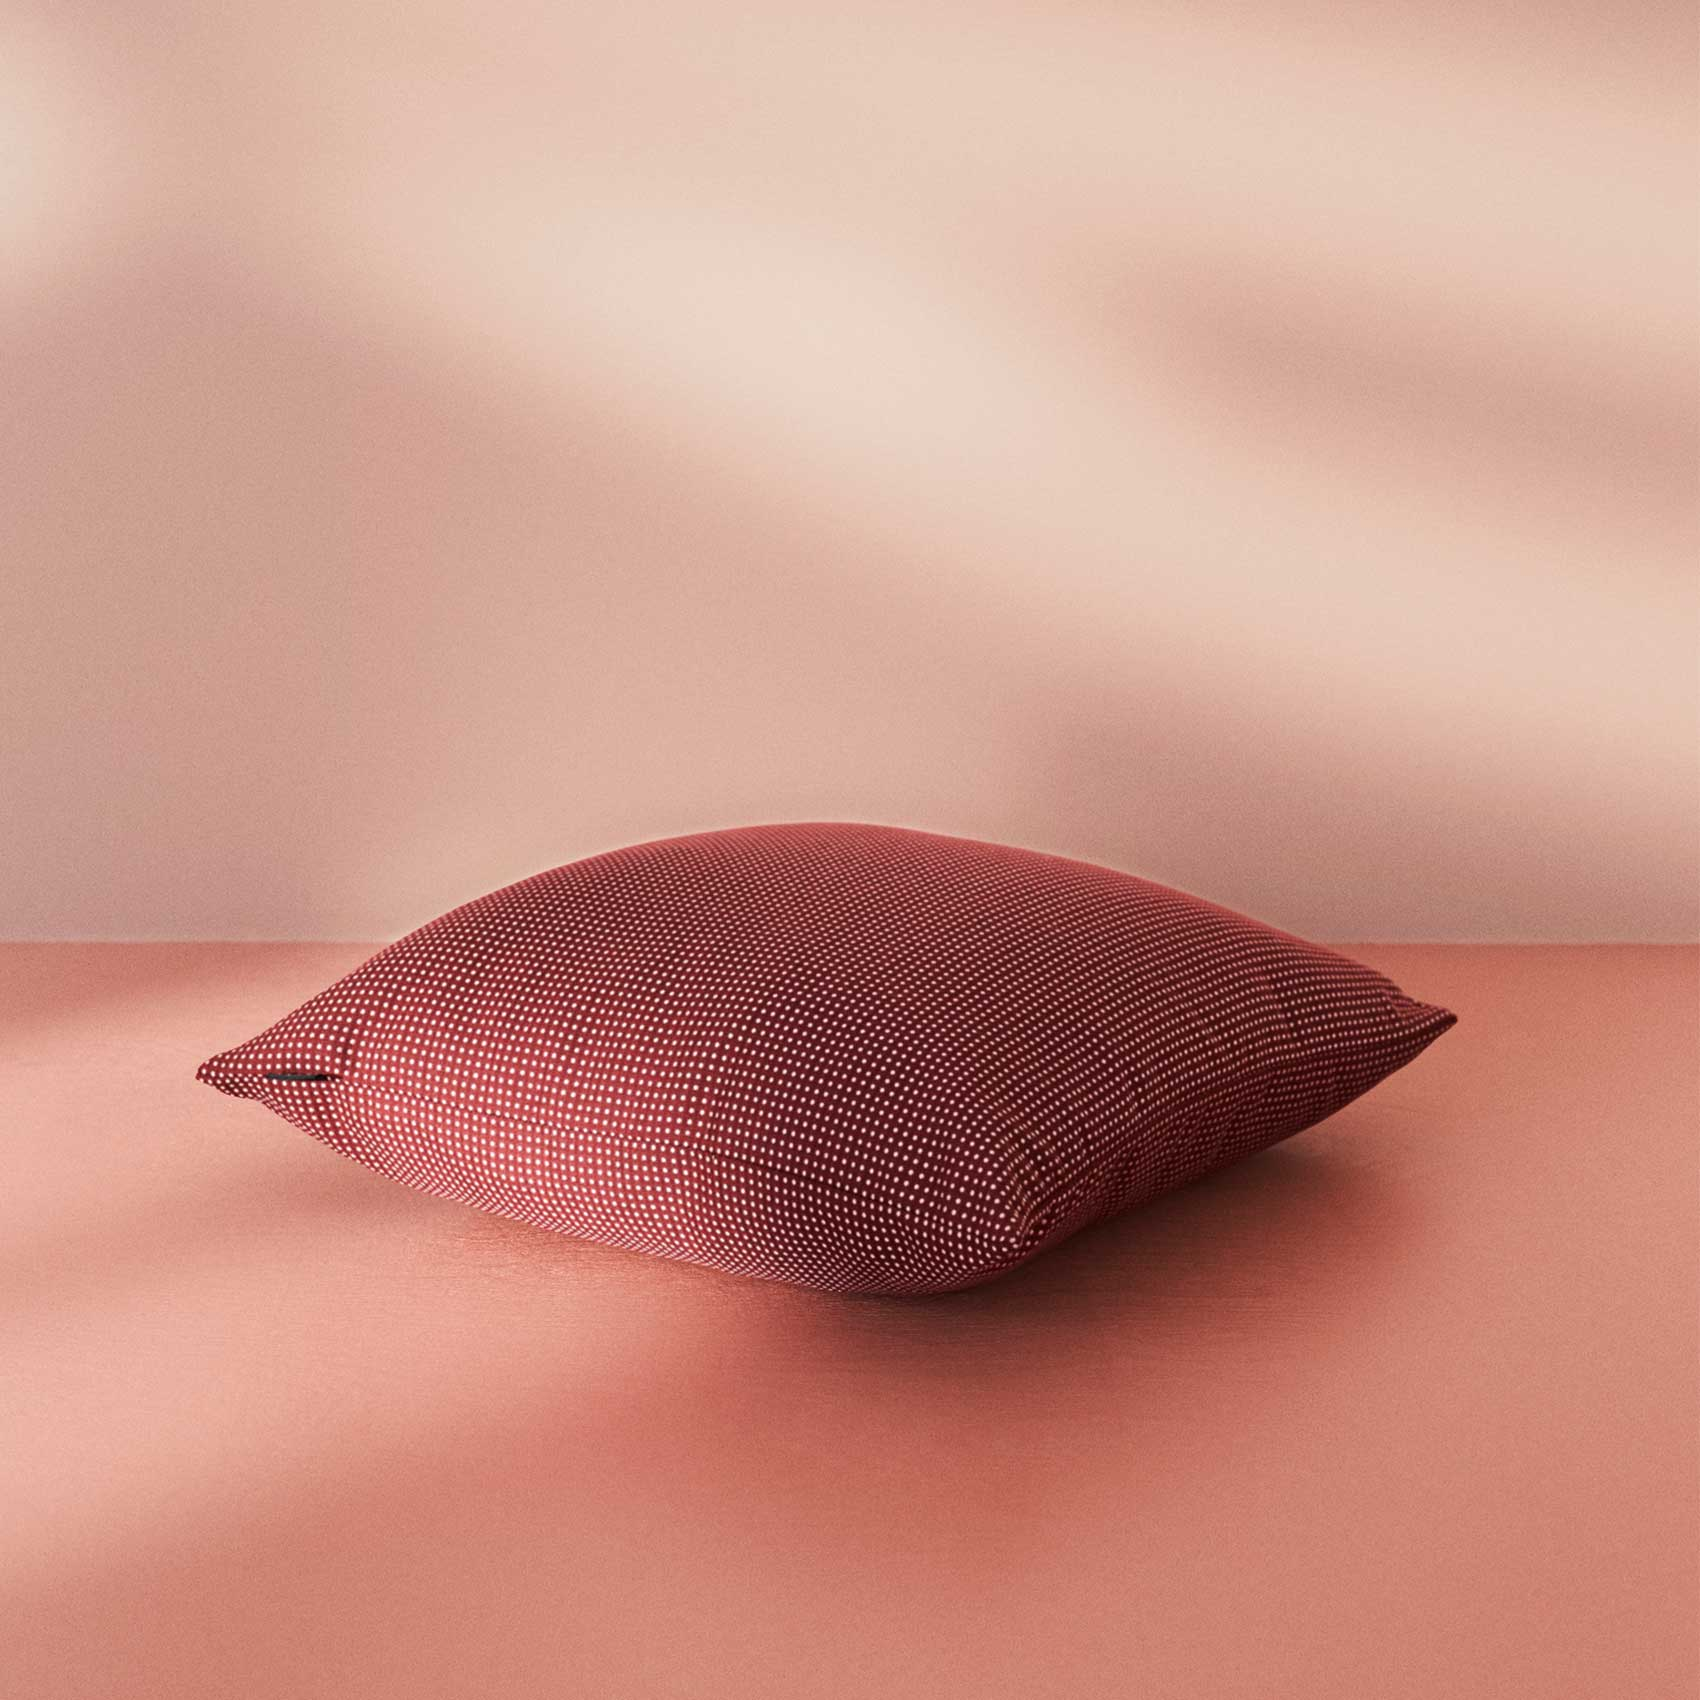 Warm Nordic cushion in bordeaux